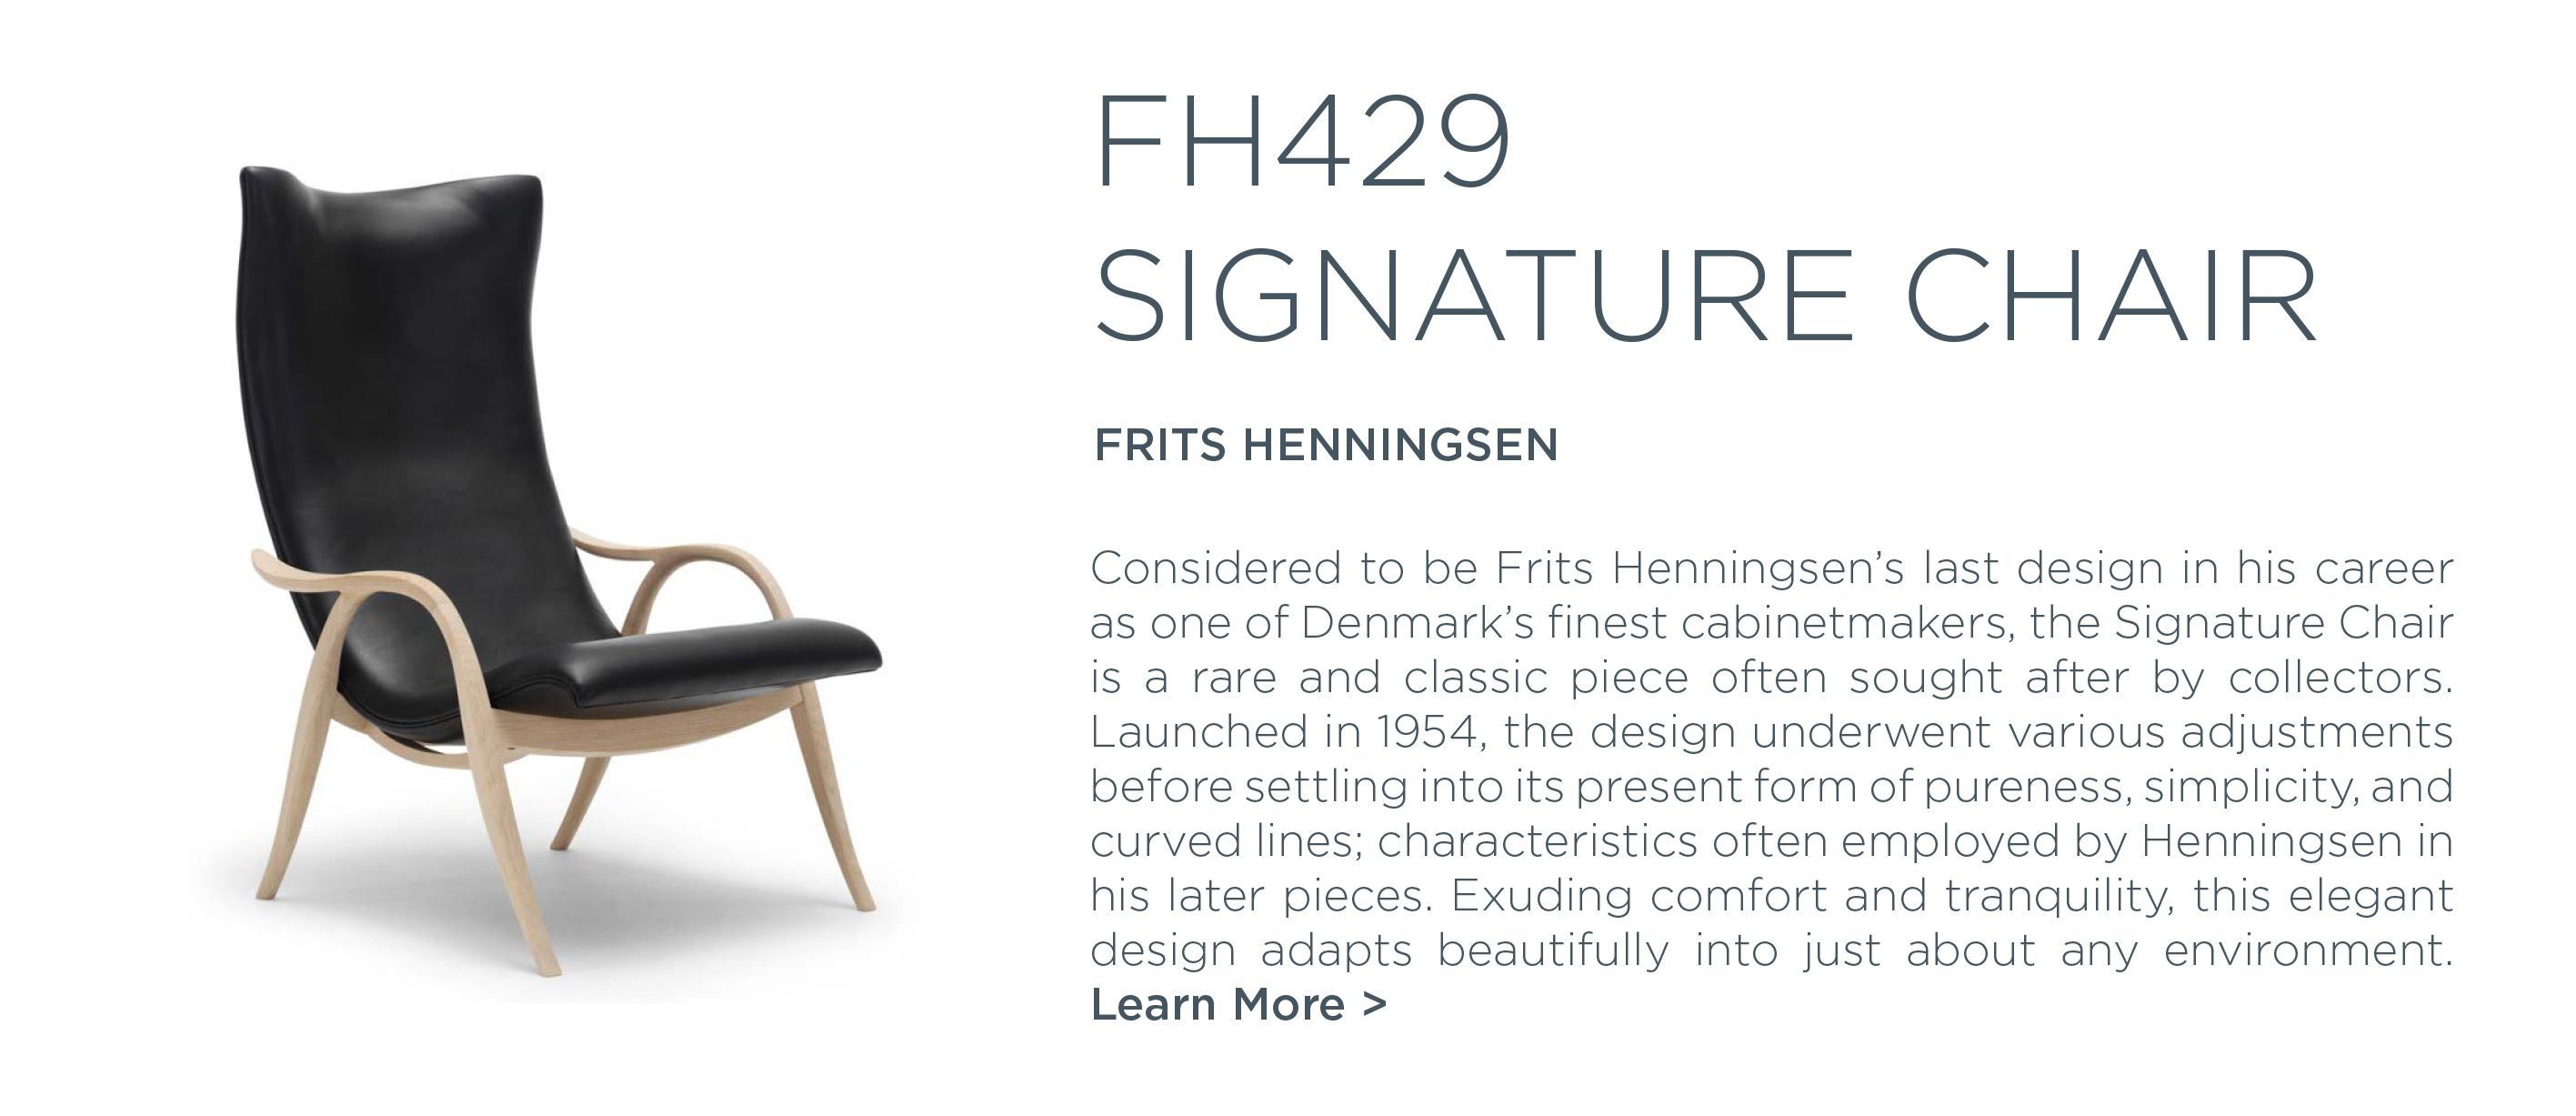 FH429 Signature chair frits henningsen carl hansen and son suite ny new york